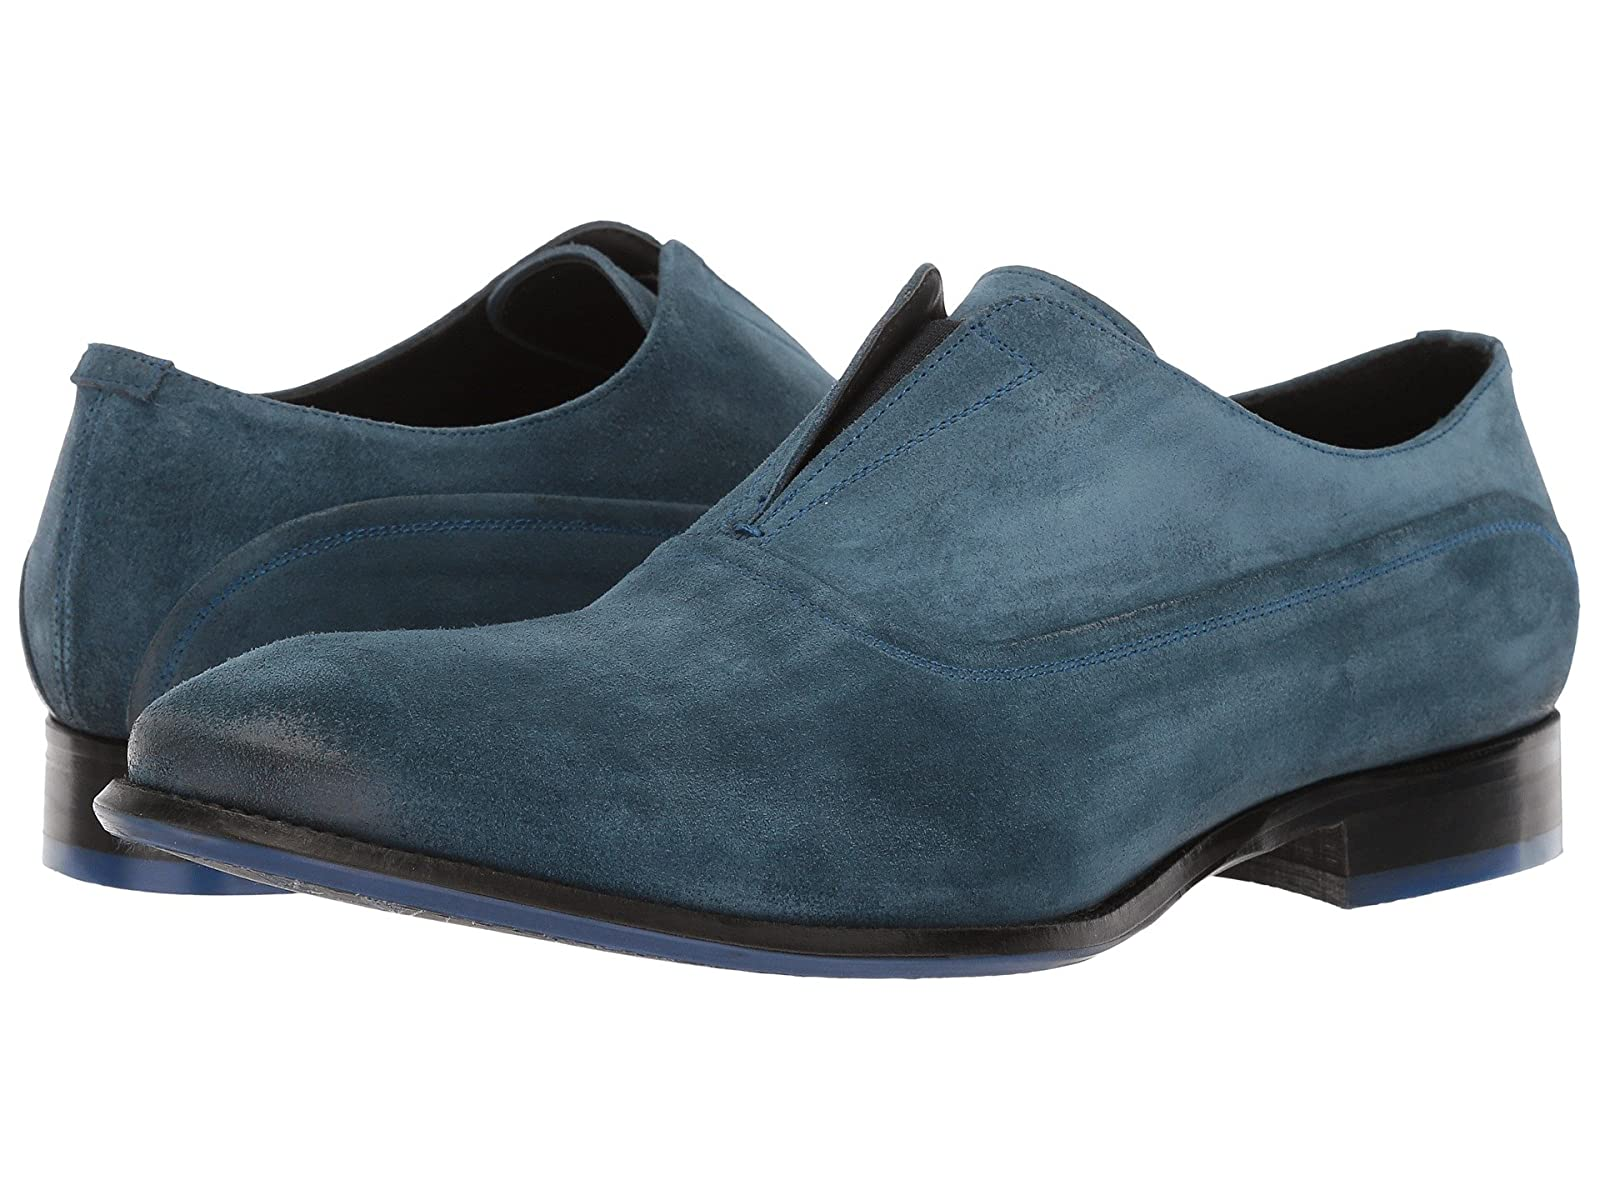 Bacco Bucci FrossiAtmospheric grades have affordable shoes